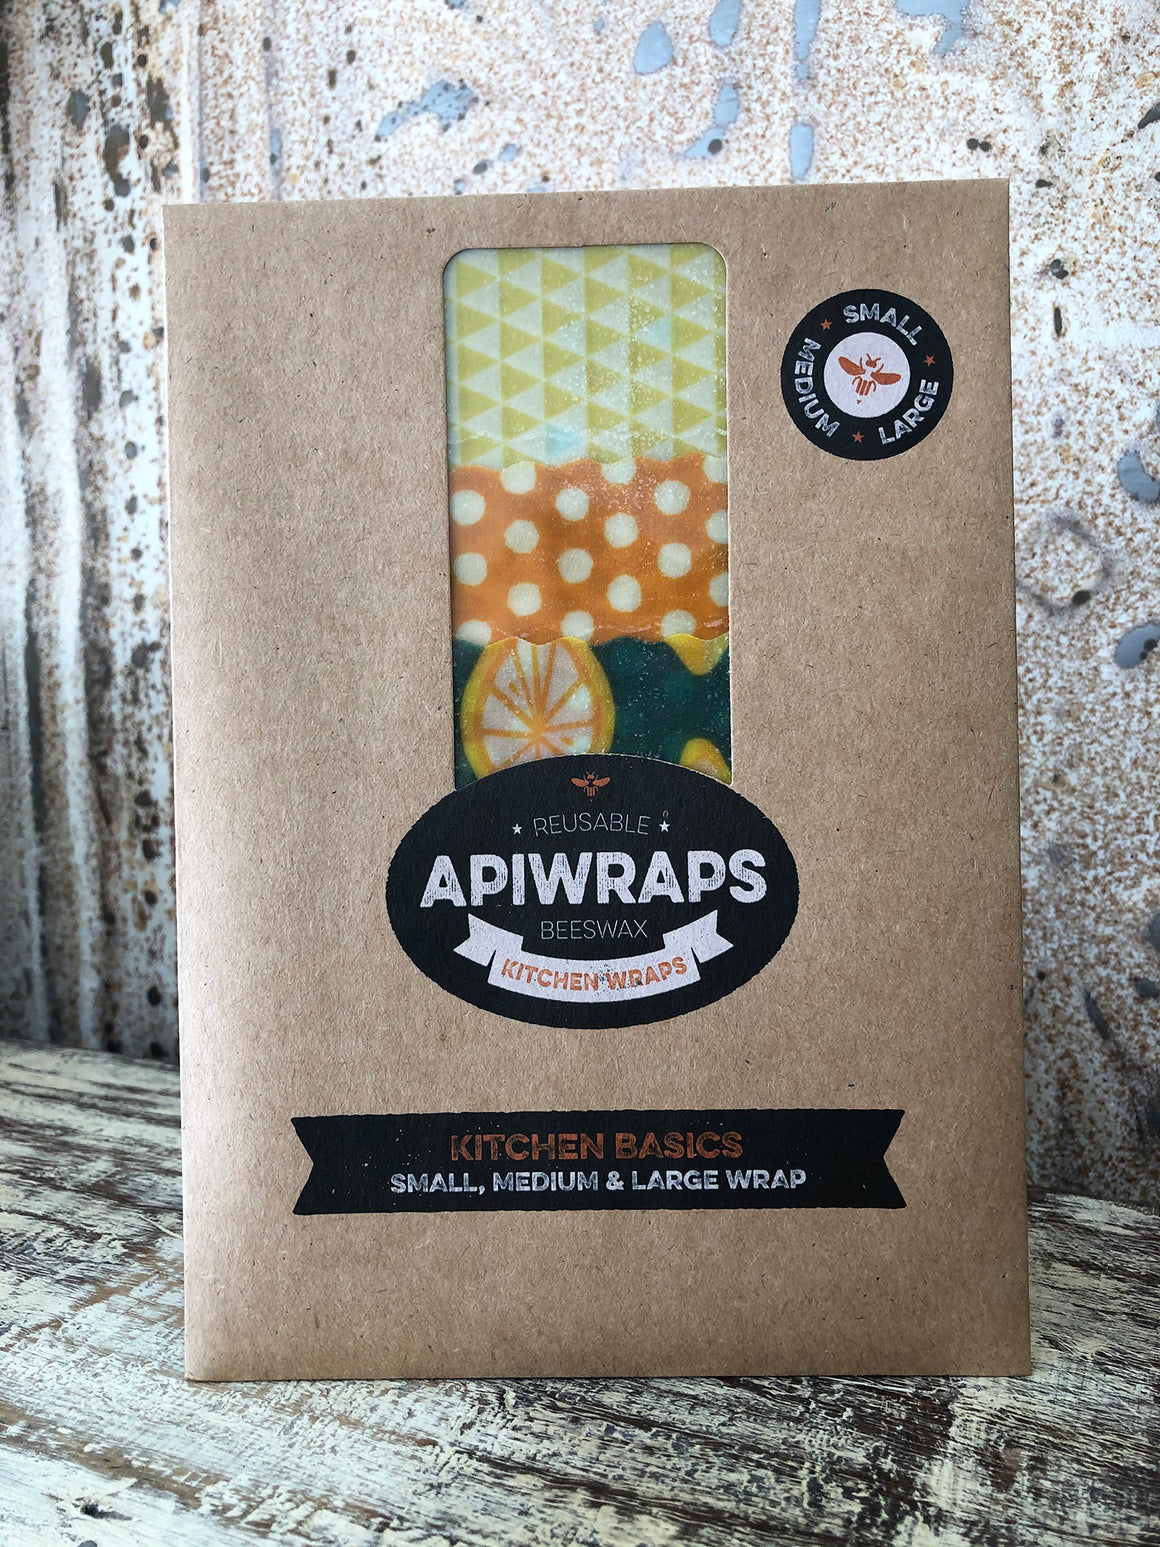 Beeswax kitchen wraps